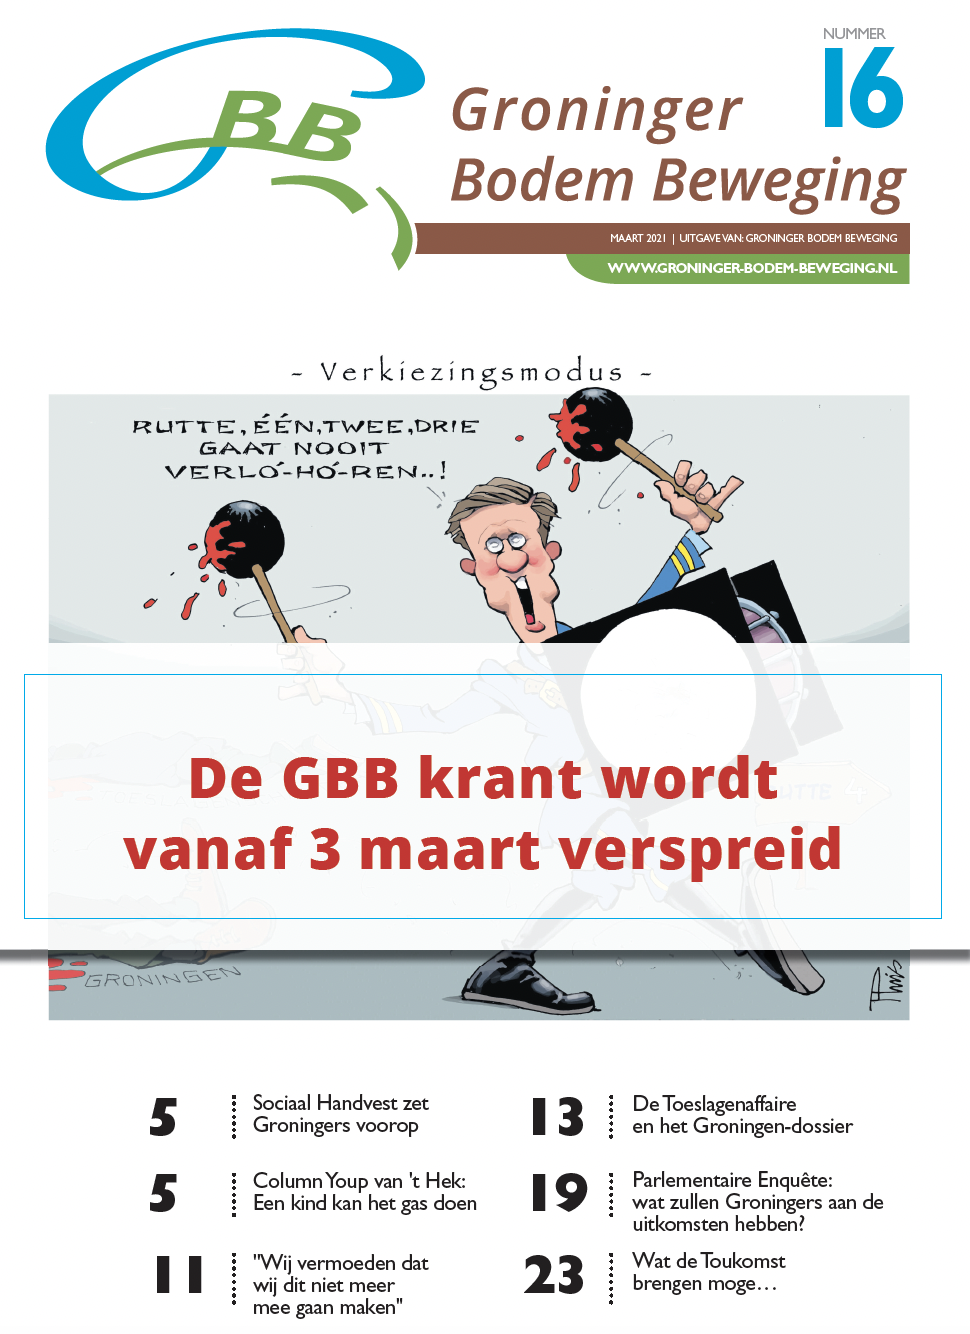 GBB krant falend systeem Groningers